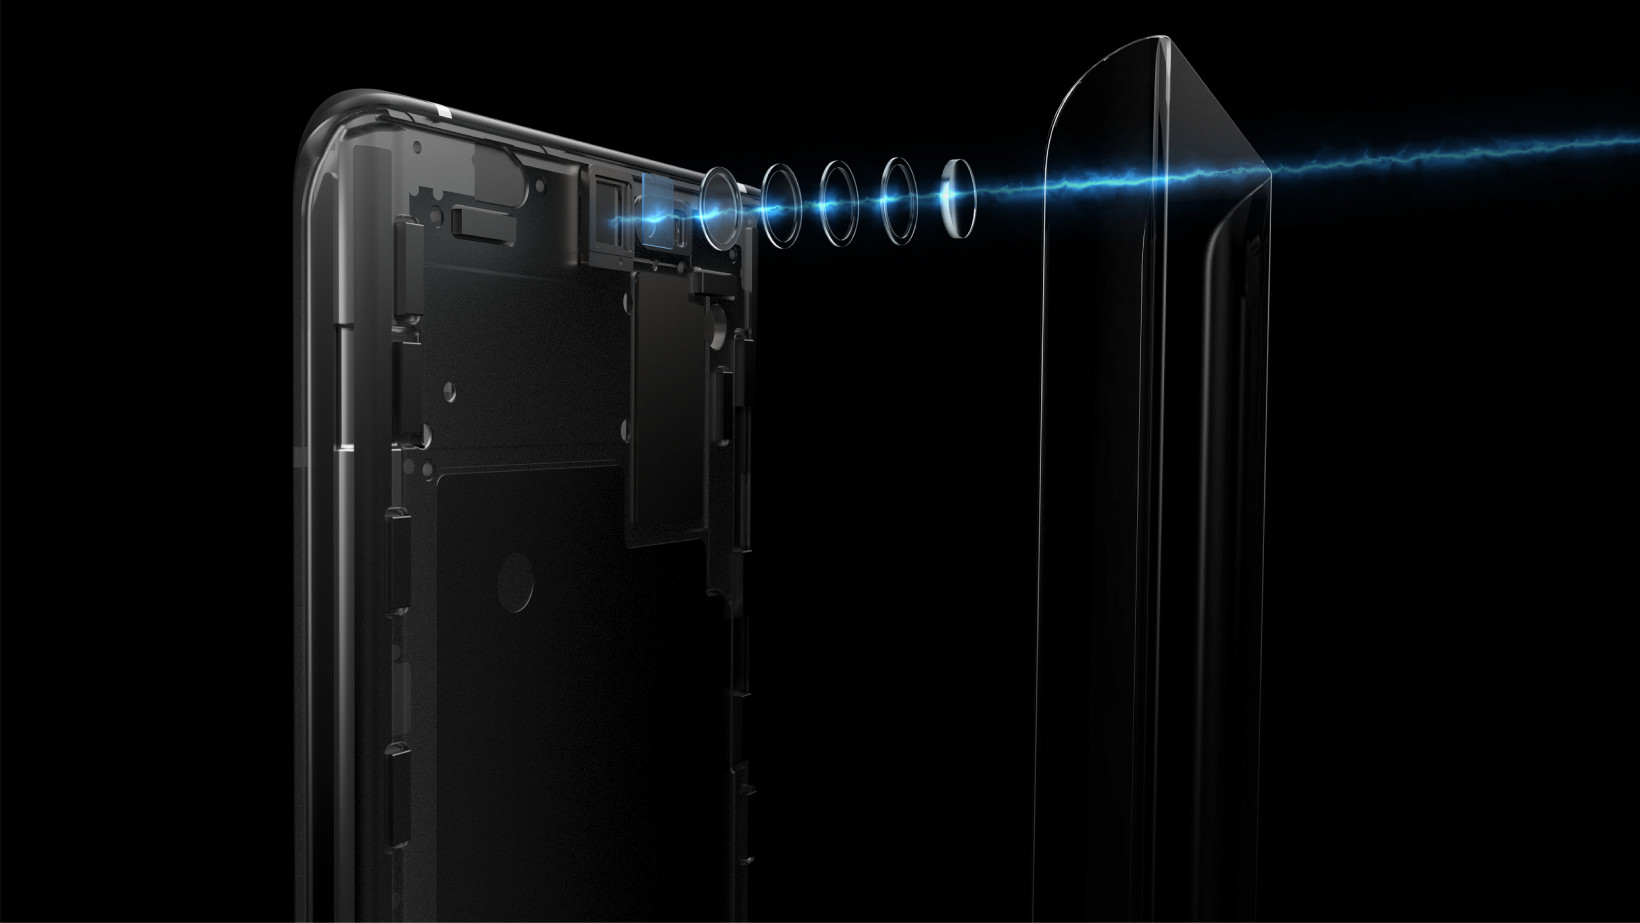 Vivo claims to have fit a 16-megapixel selfie camera underneath its display, completely hidden from view